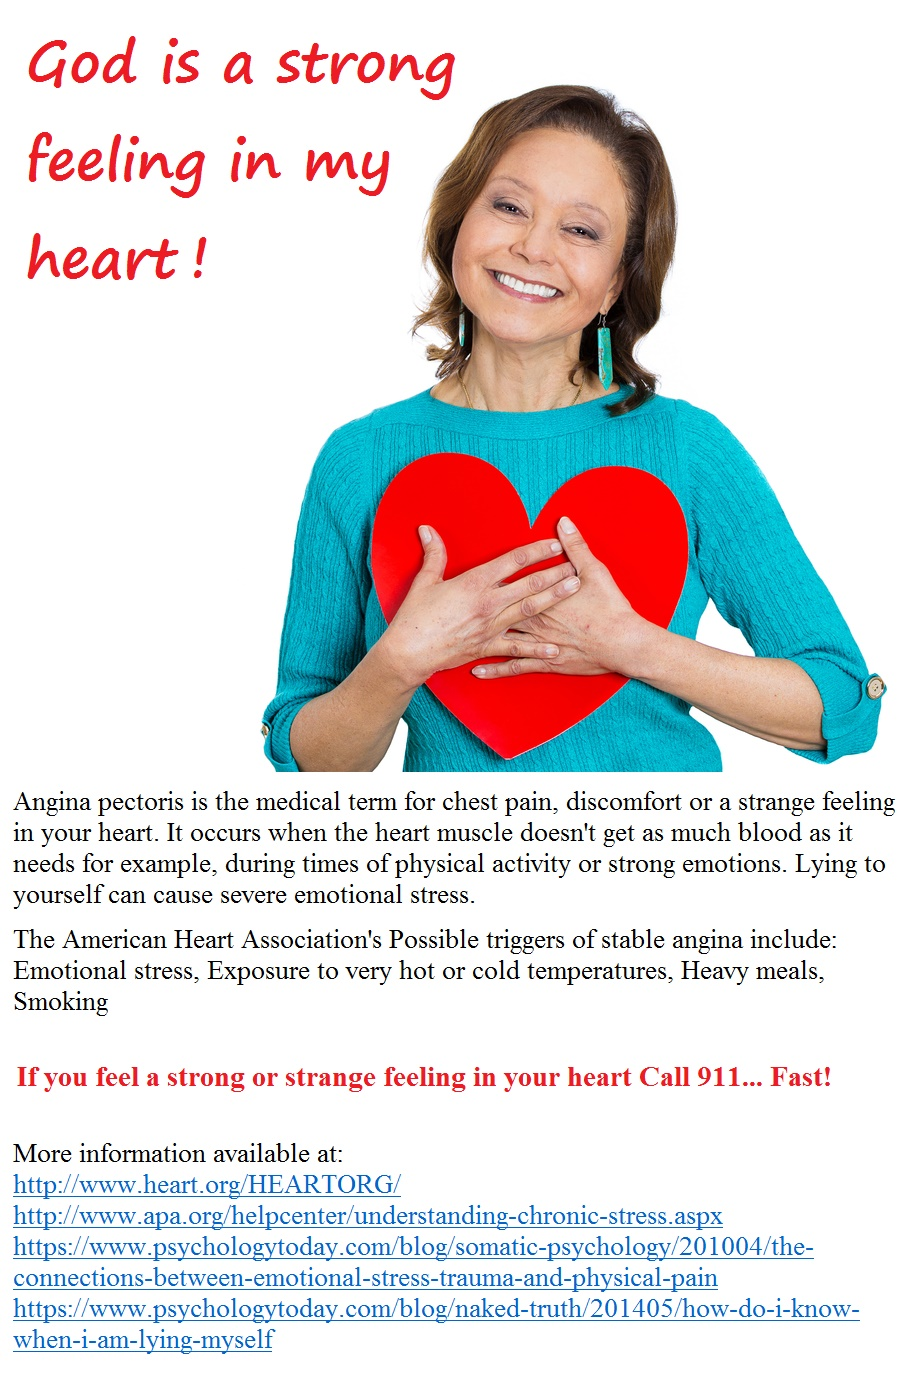 If you feel a strong or strange feeling in your heart Call 911... And Fast!